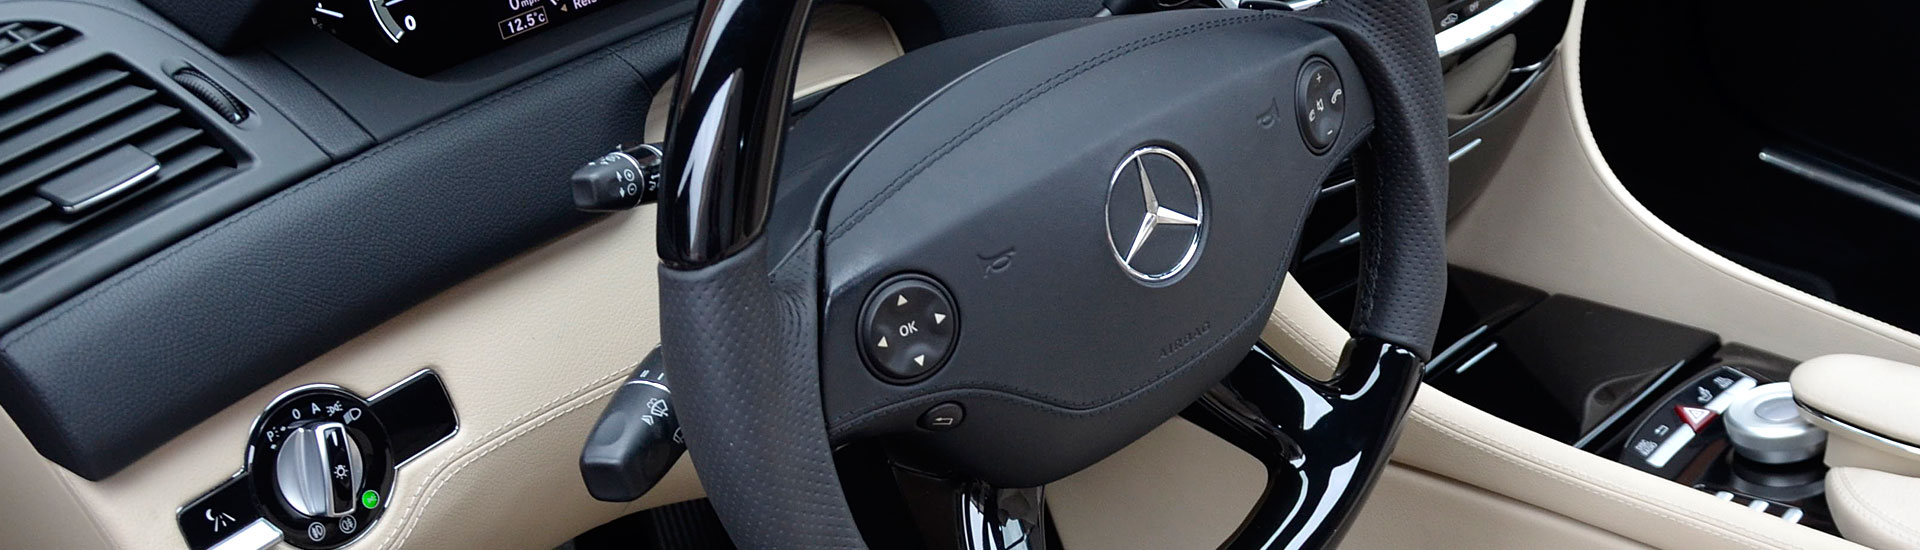 C216 W216 CL Mercedes Tuning AMG Interior Carbon Leather